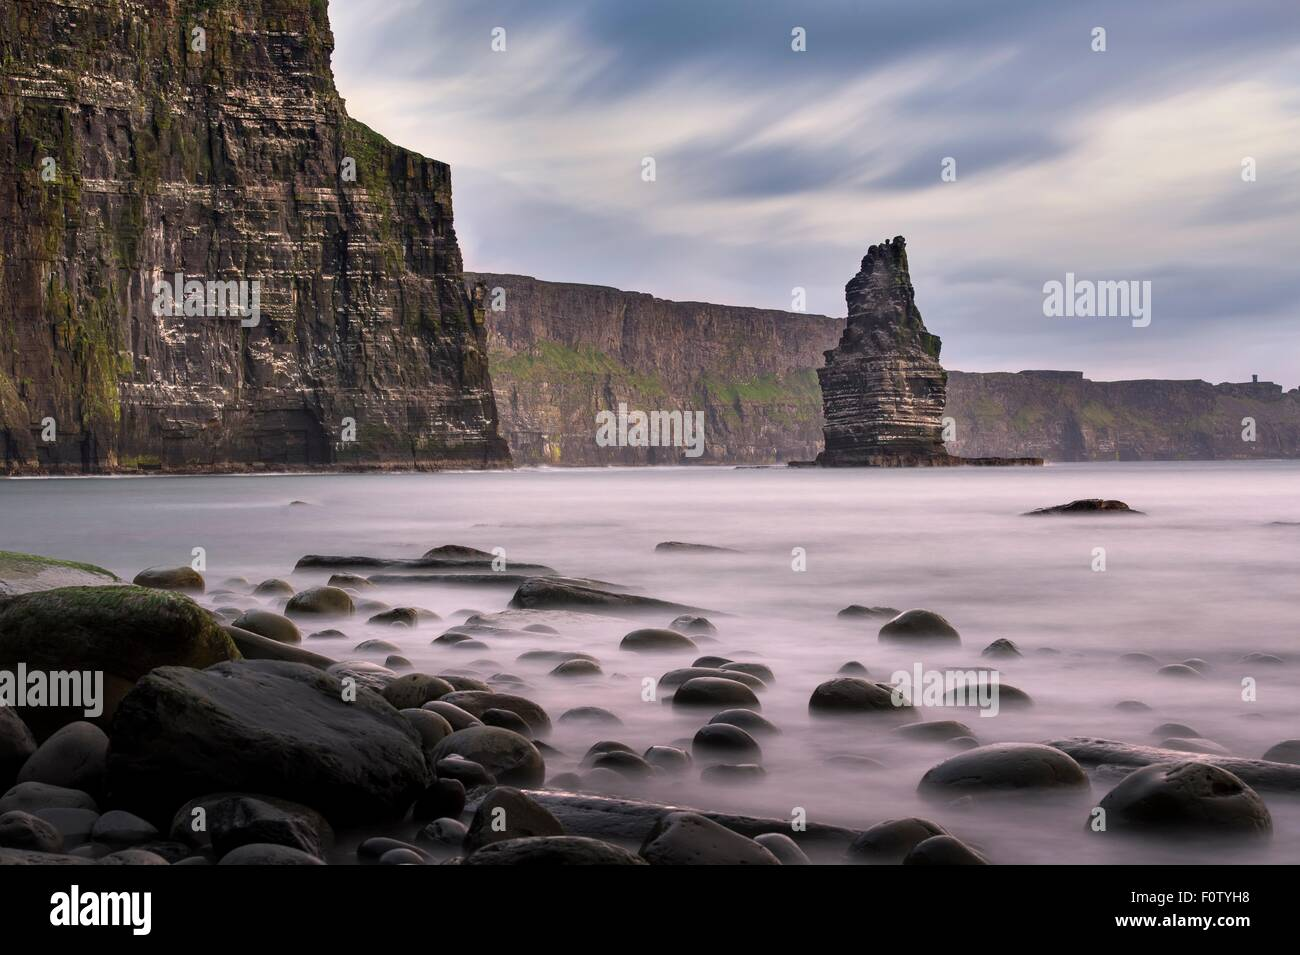 Cliffs of Moher, Liscannor, Ireland - Stock Image